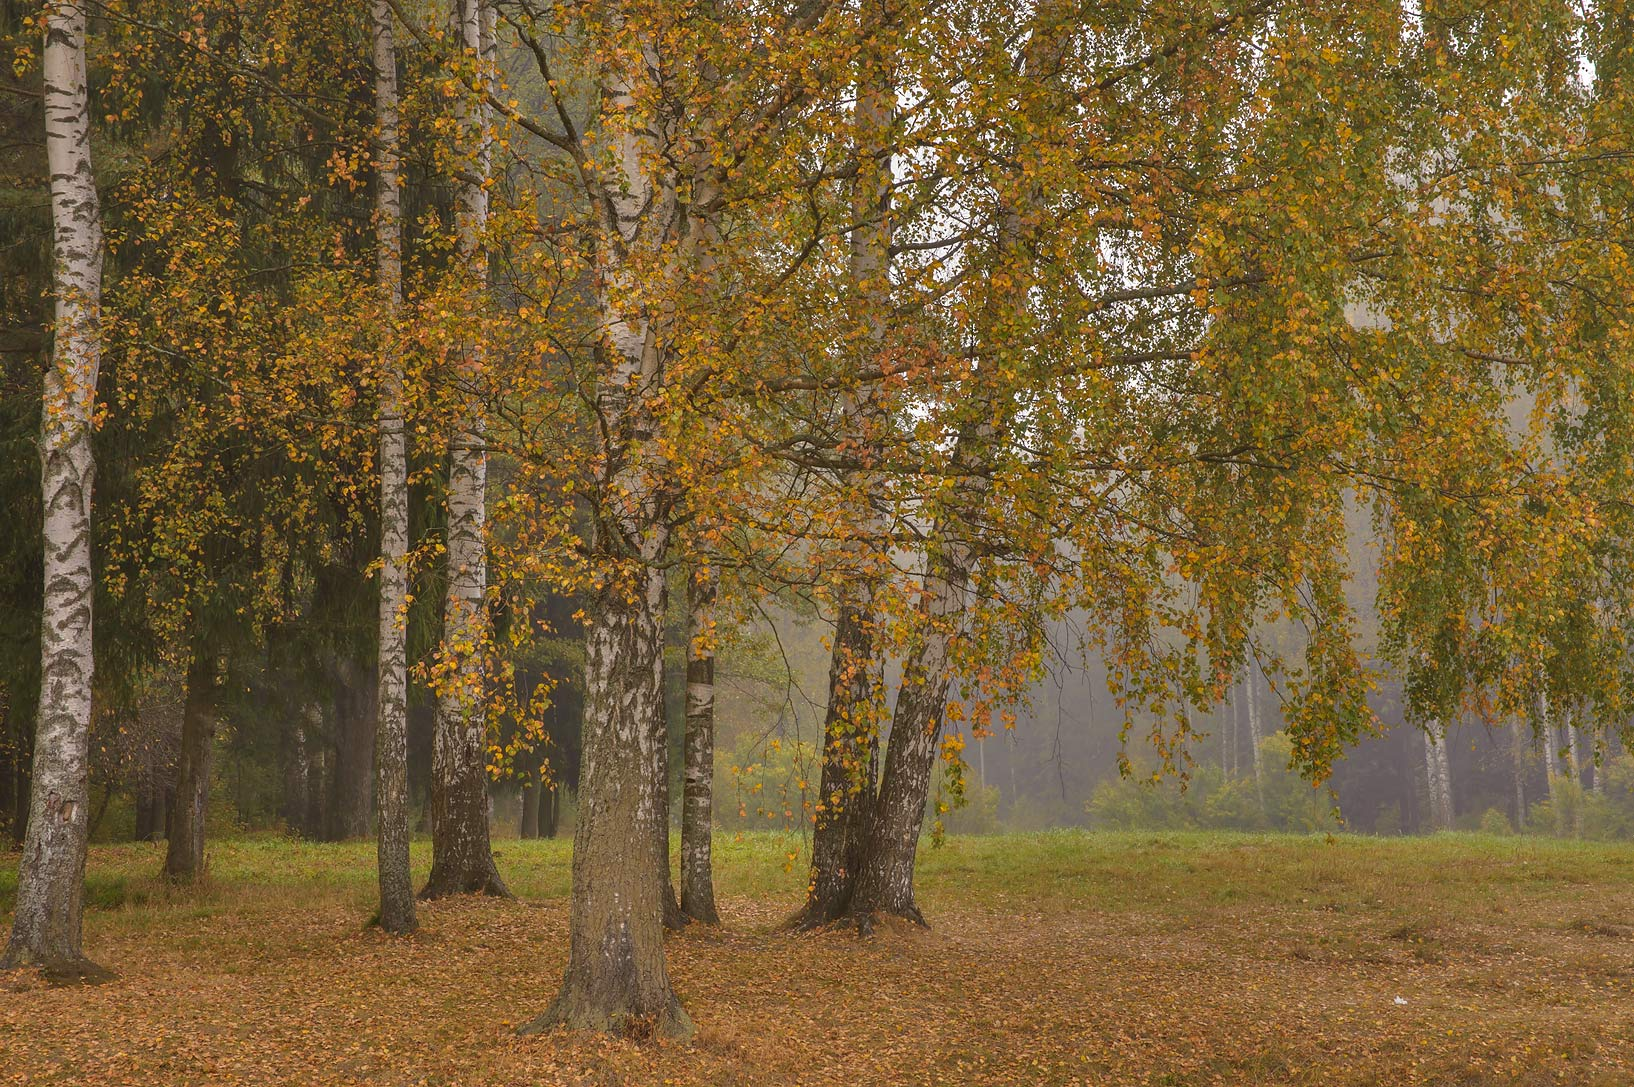 Birch grove near Krasnogo Bugra (Solntsa) Alley...a suburb of St.Petersburg, Russia